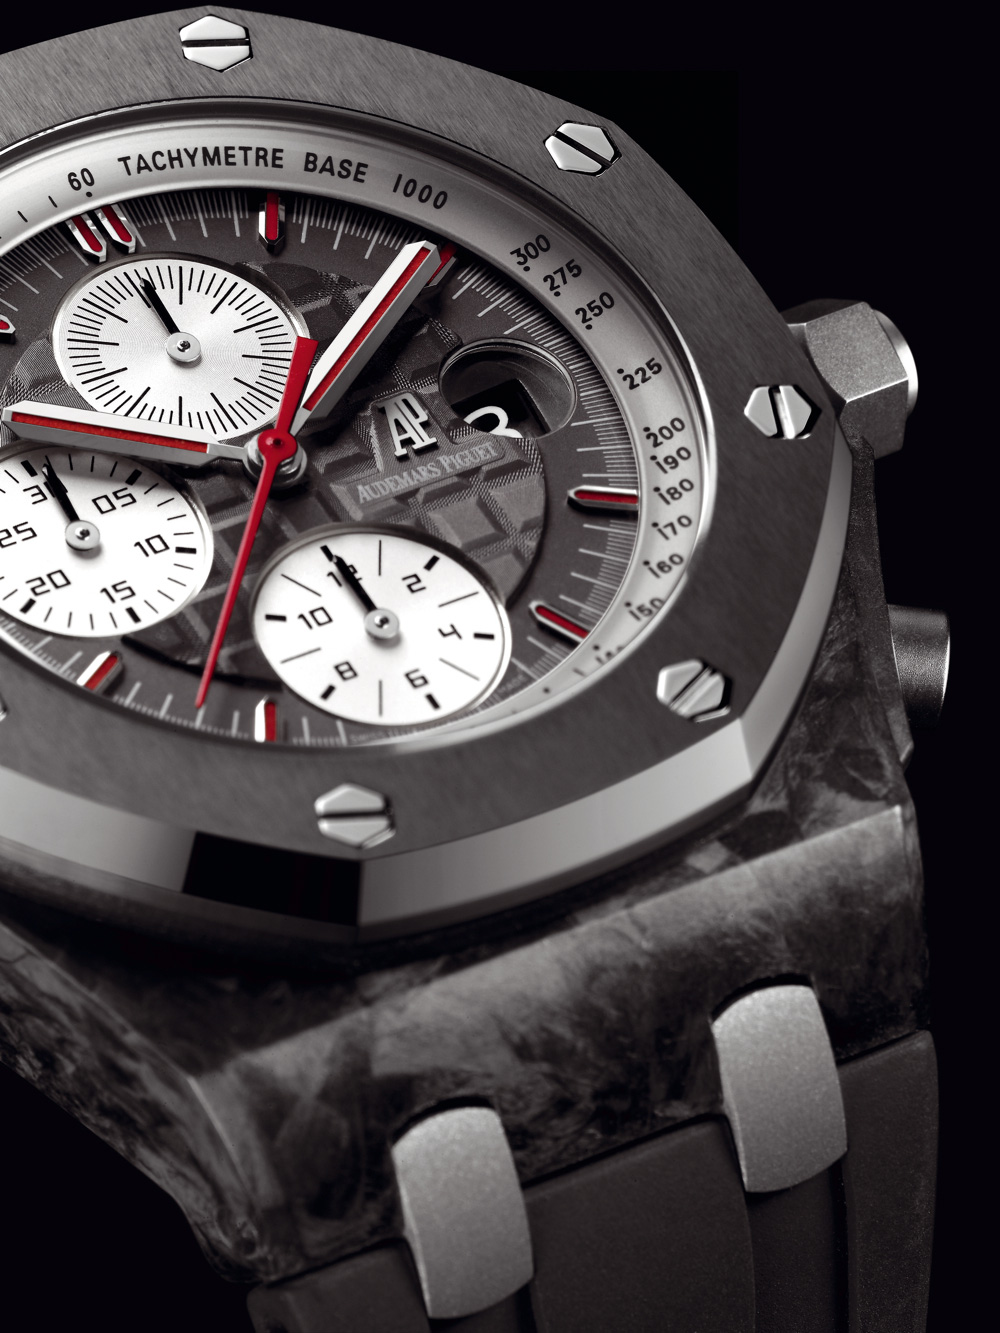 Audemars-Piguet-Royal-Oak-Offshore-Jarno-Trulli-Chronograph-1